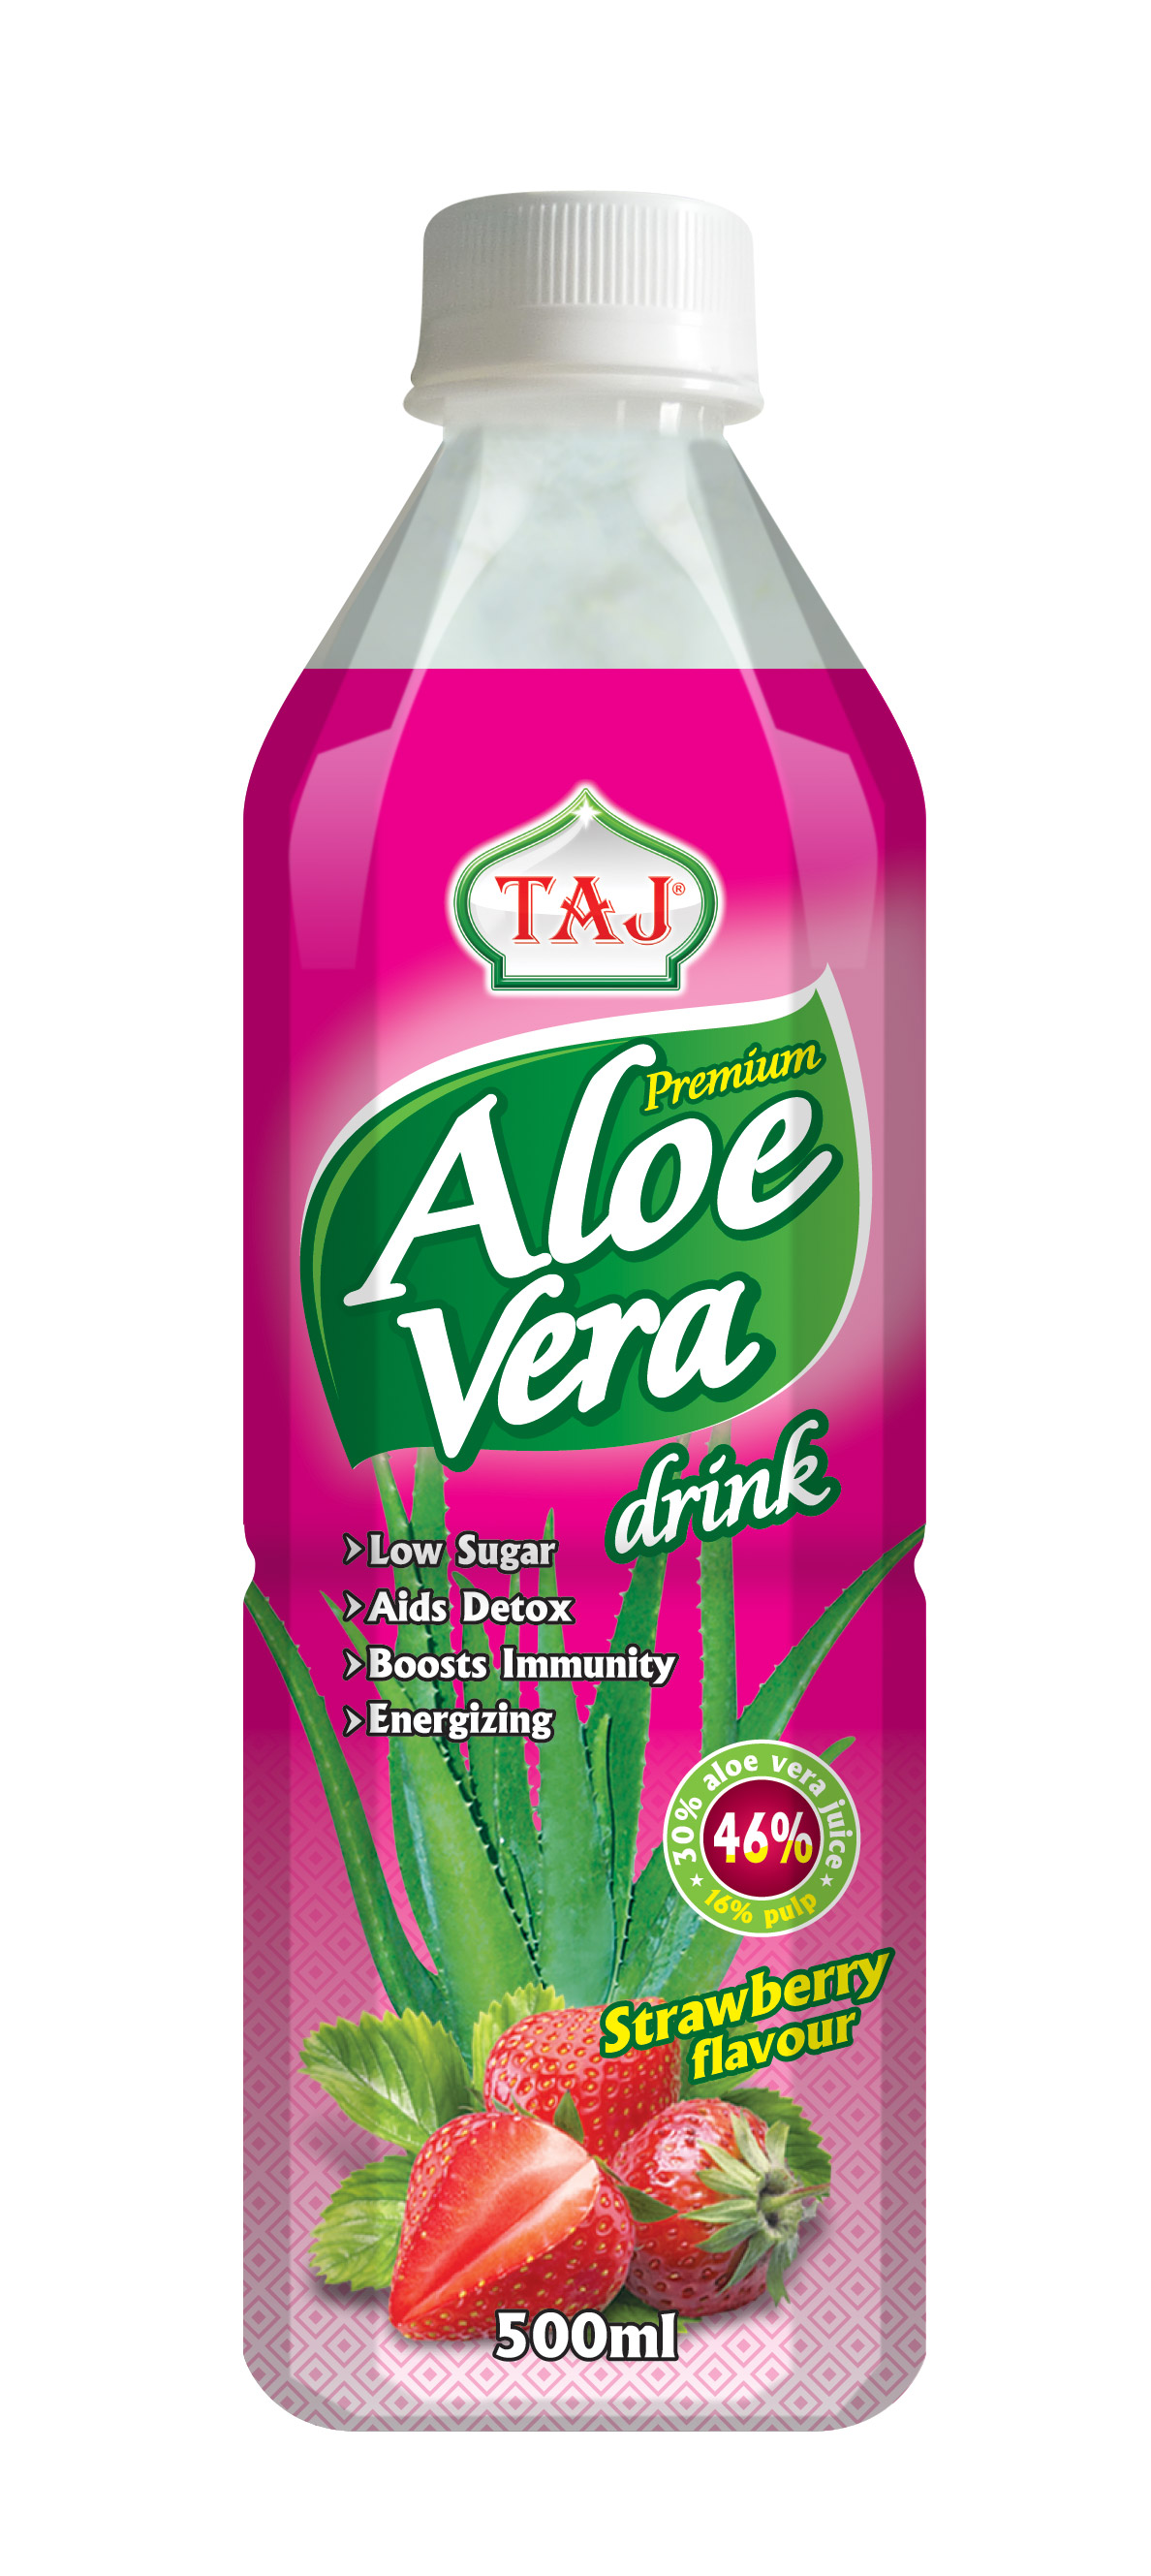 how to drink aloe vera juice to lose weight